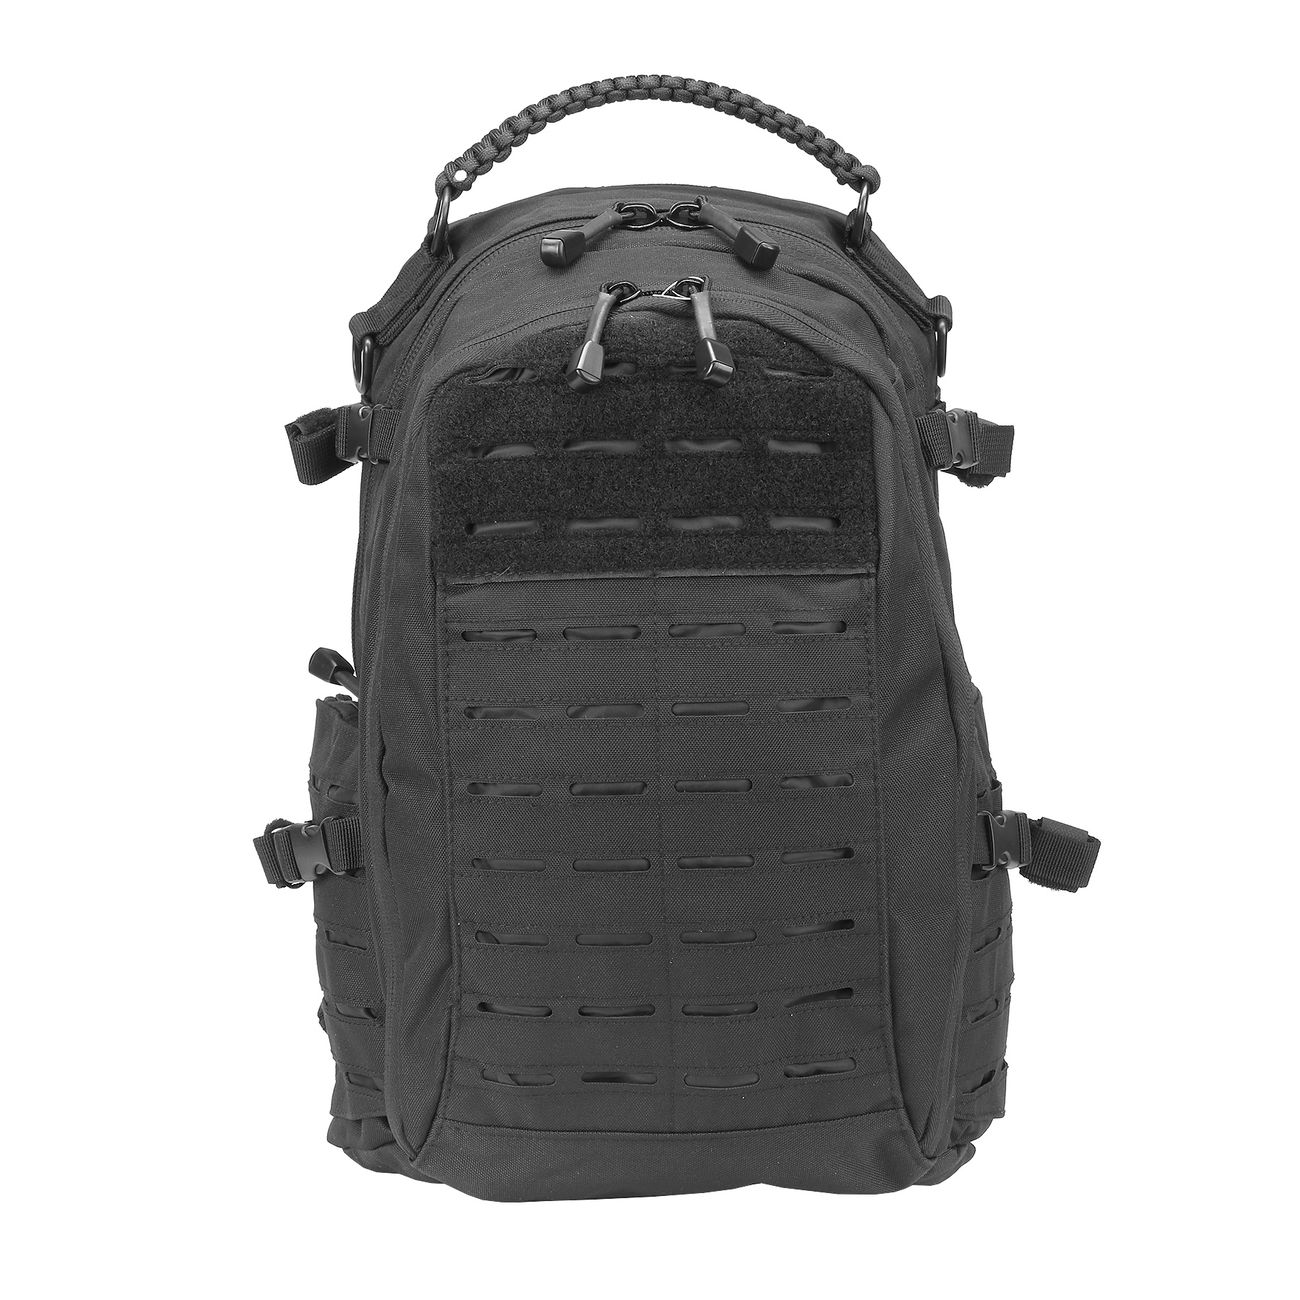 Mil-Tec Rucksack Mission Pack Laser Cut Small schwarz 5